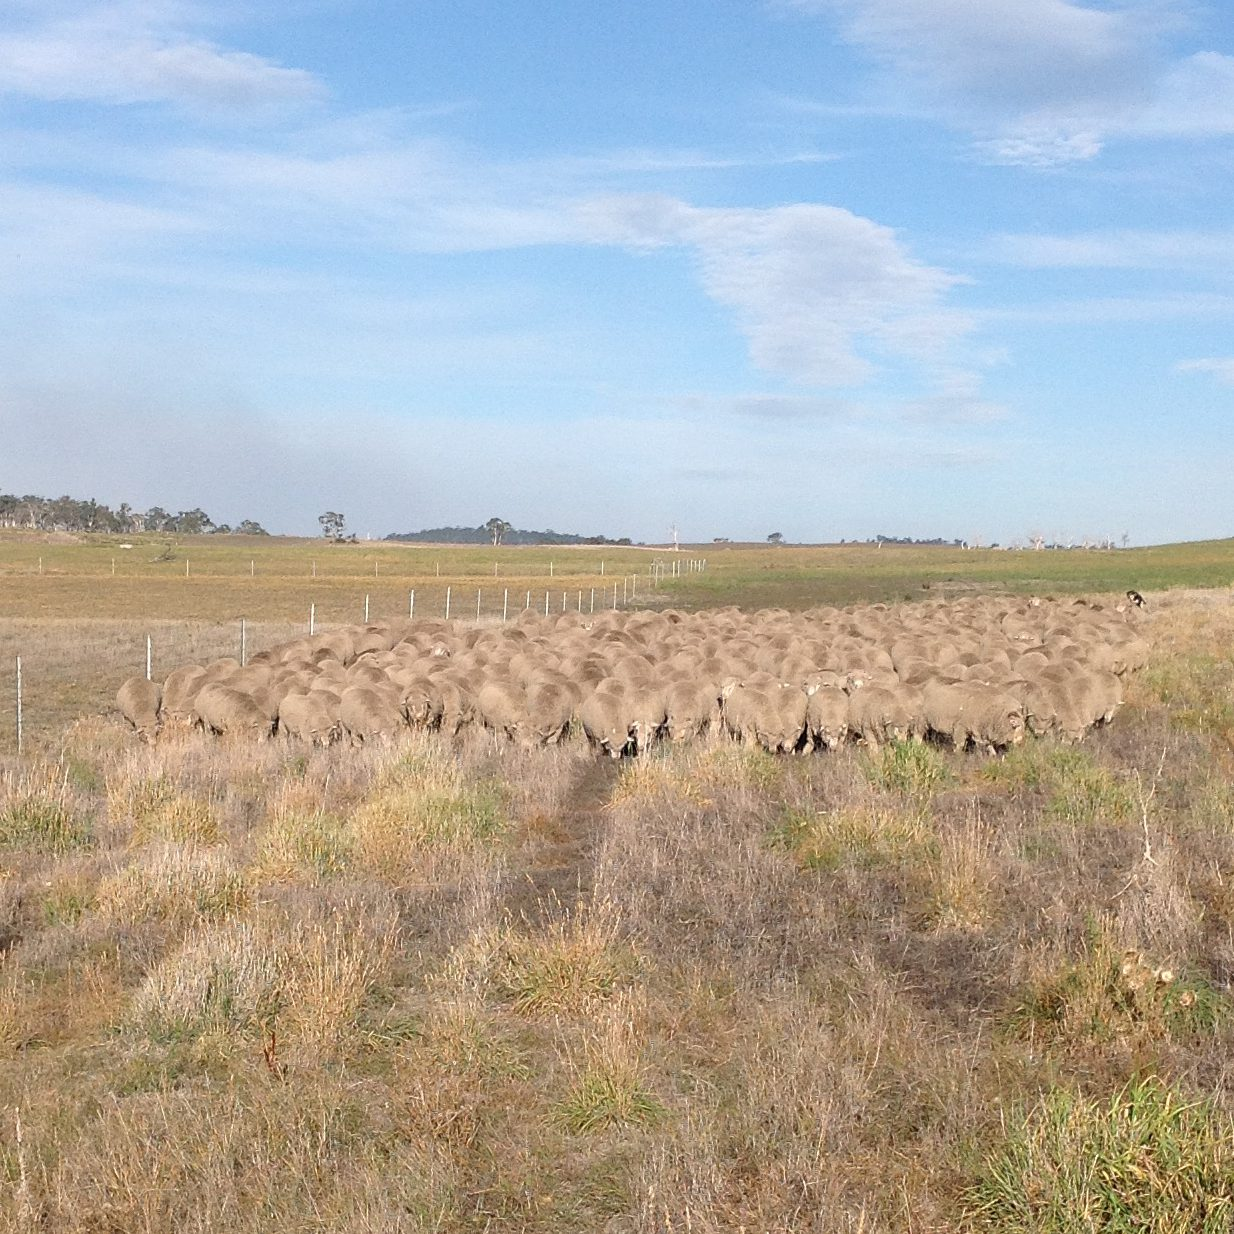 P9: They are well and truly over lucerne for the day and this is the only stretch of grass plus weeds on the way back, so I'm letting them enjoy it.